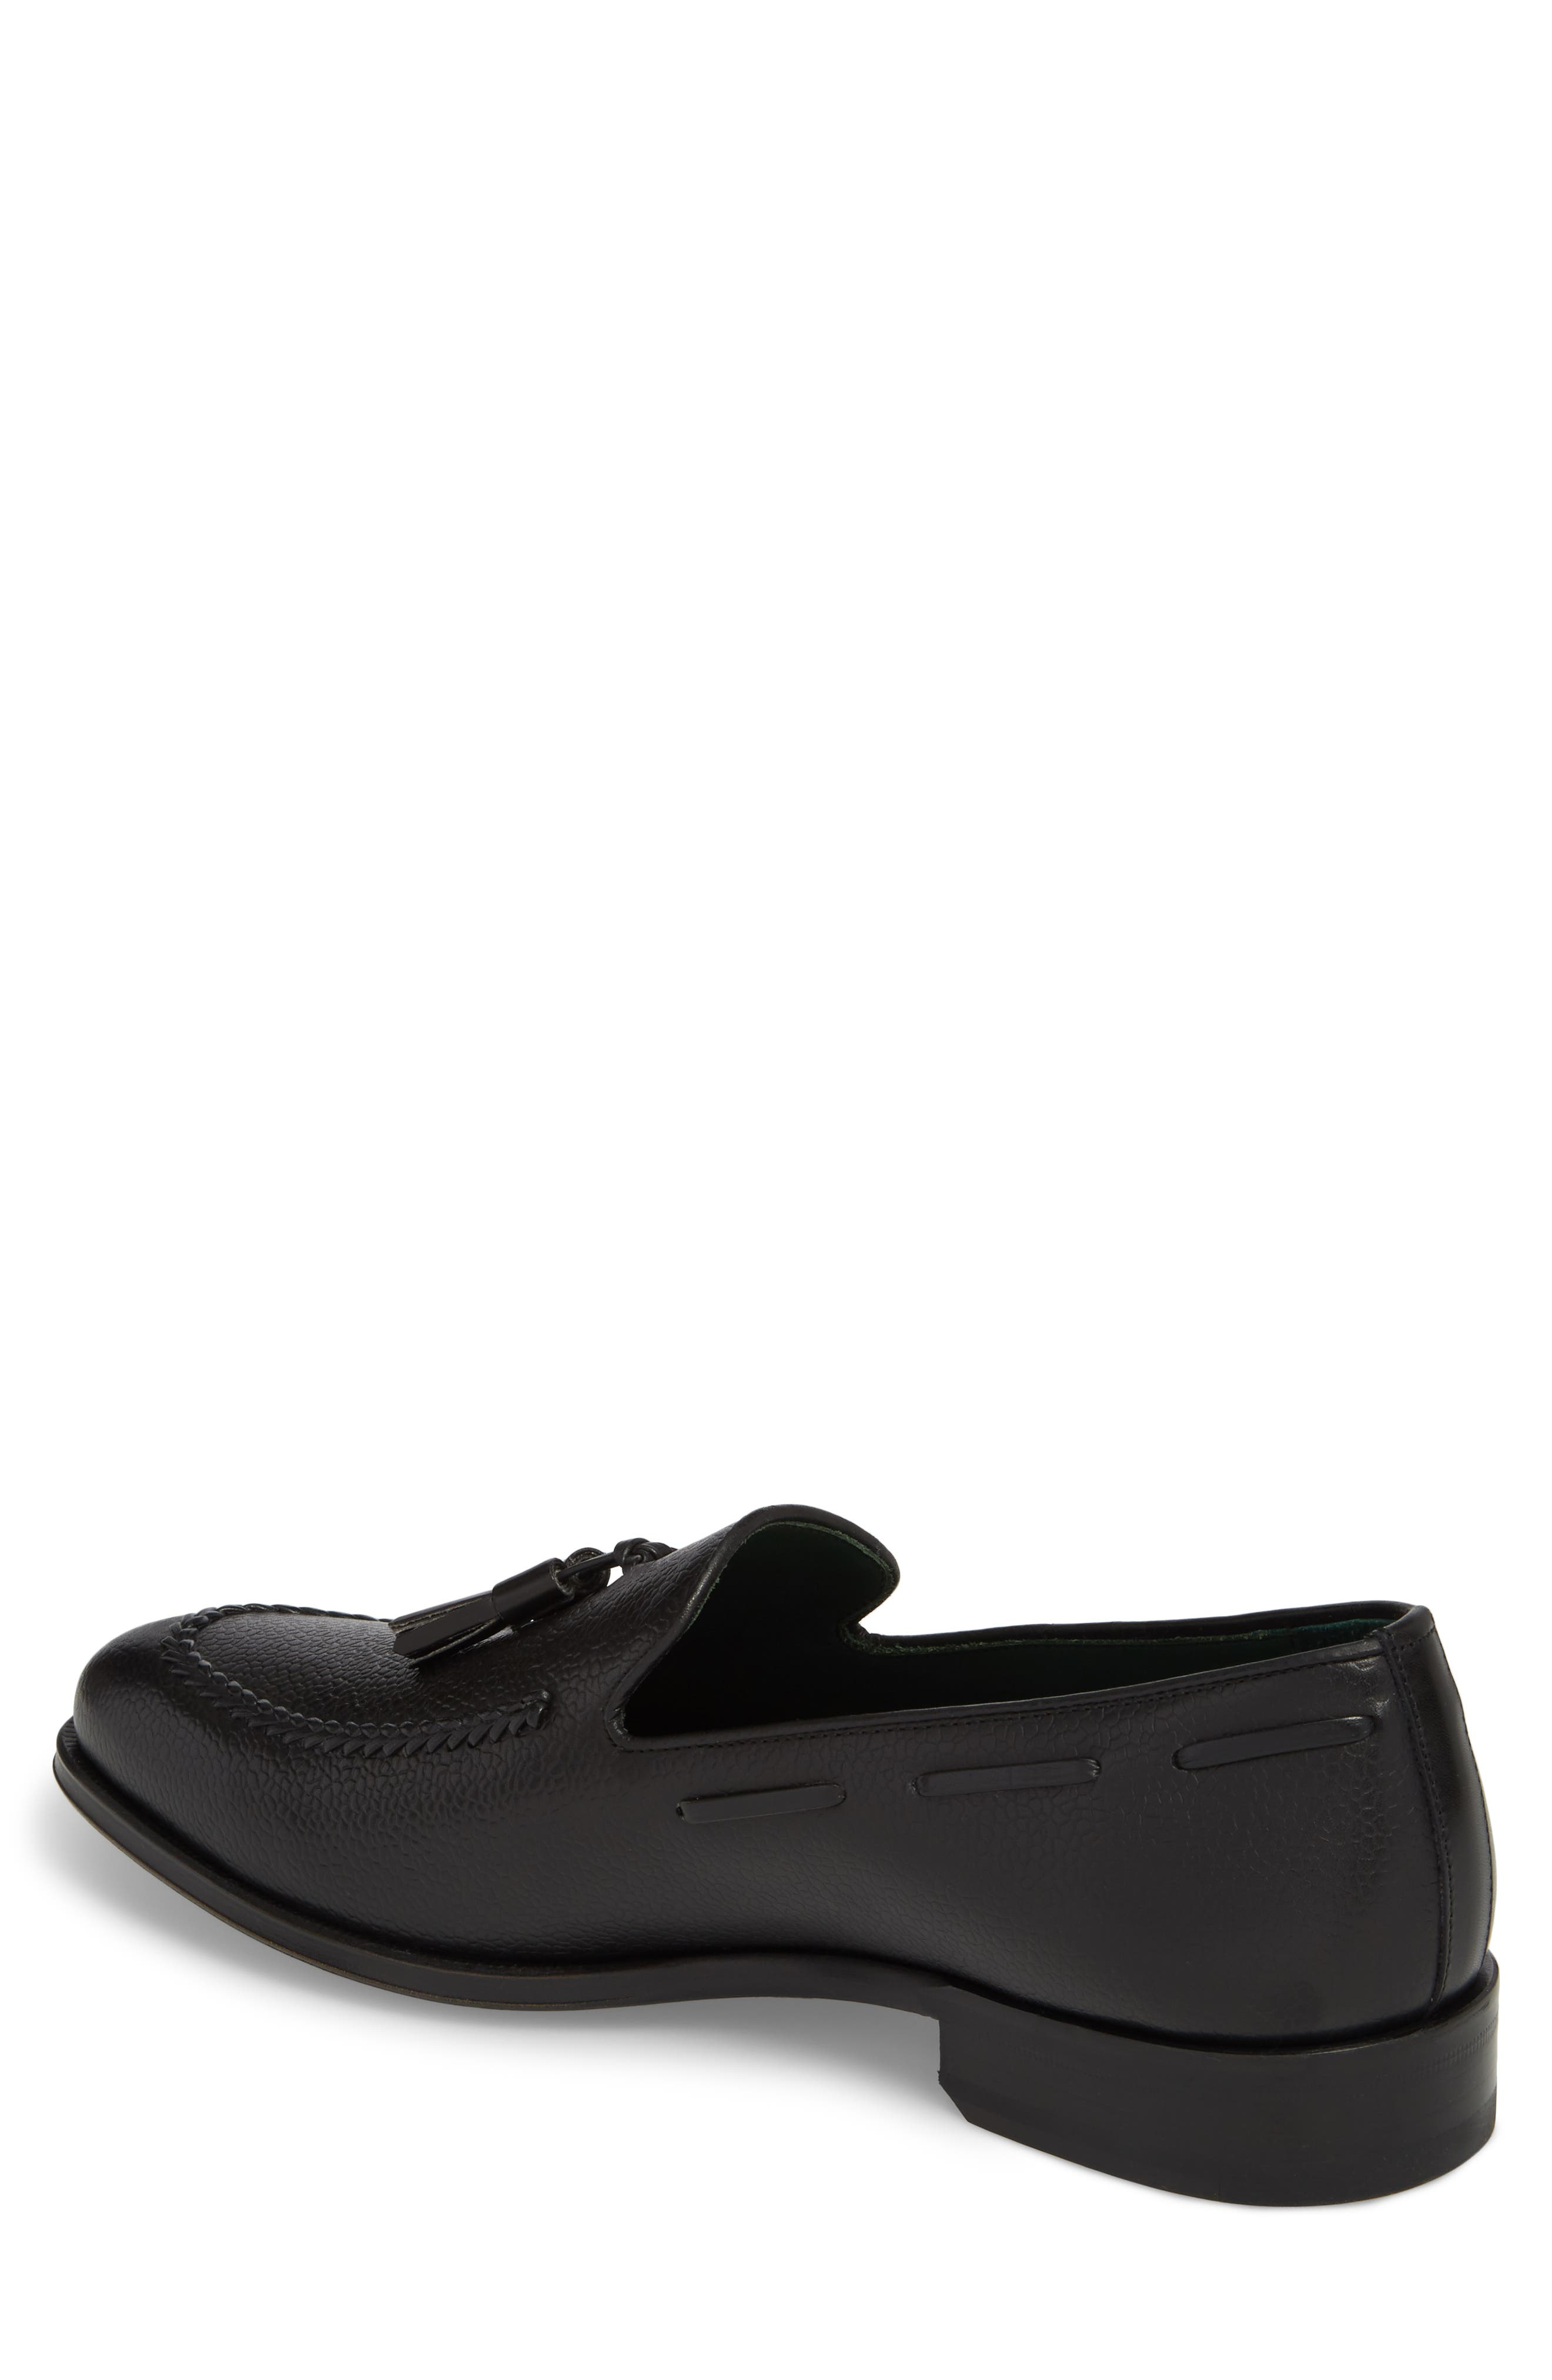 Sabina Tasseled Venetian Loafer,                             Alternate thumbnail 2, color,                             Black Leather